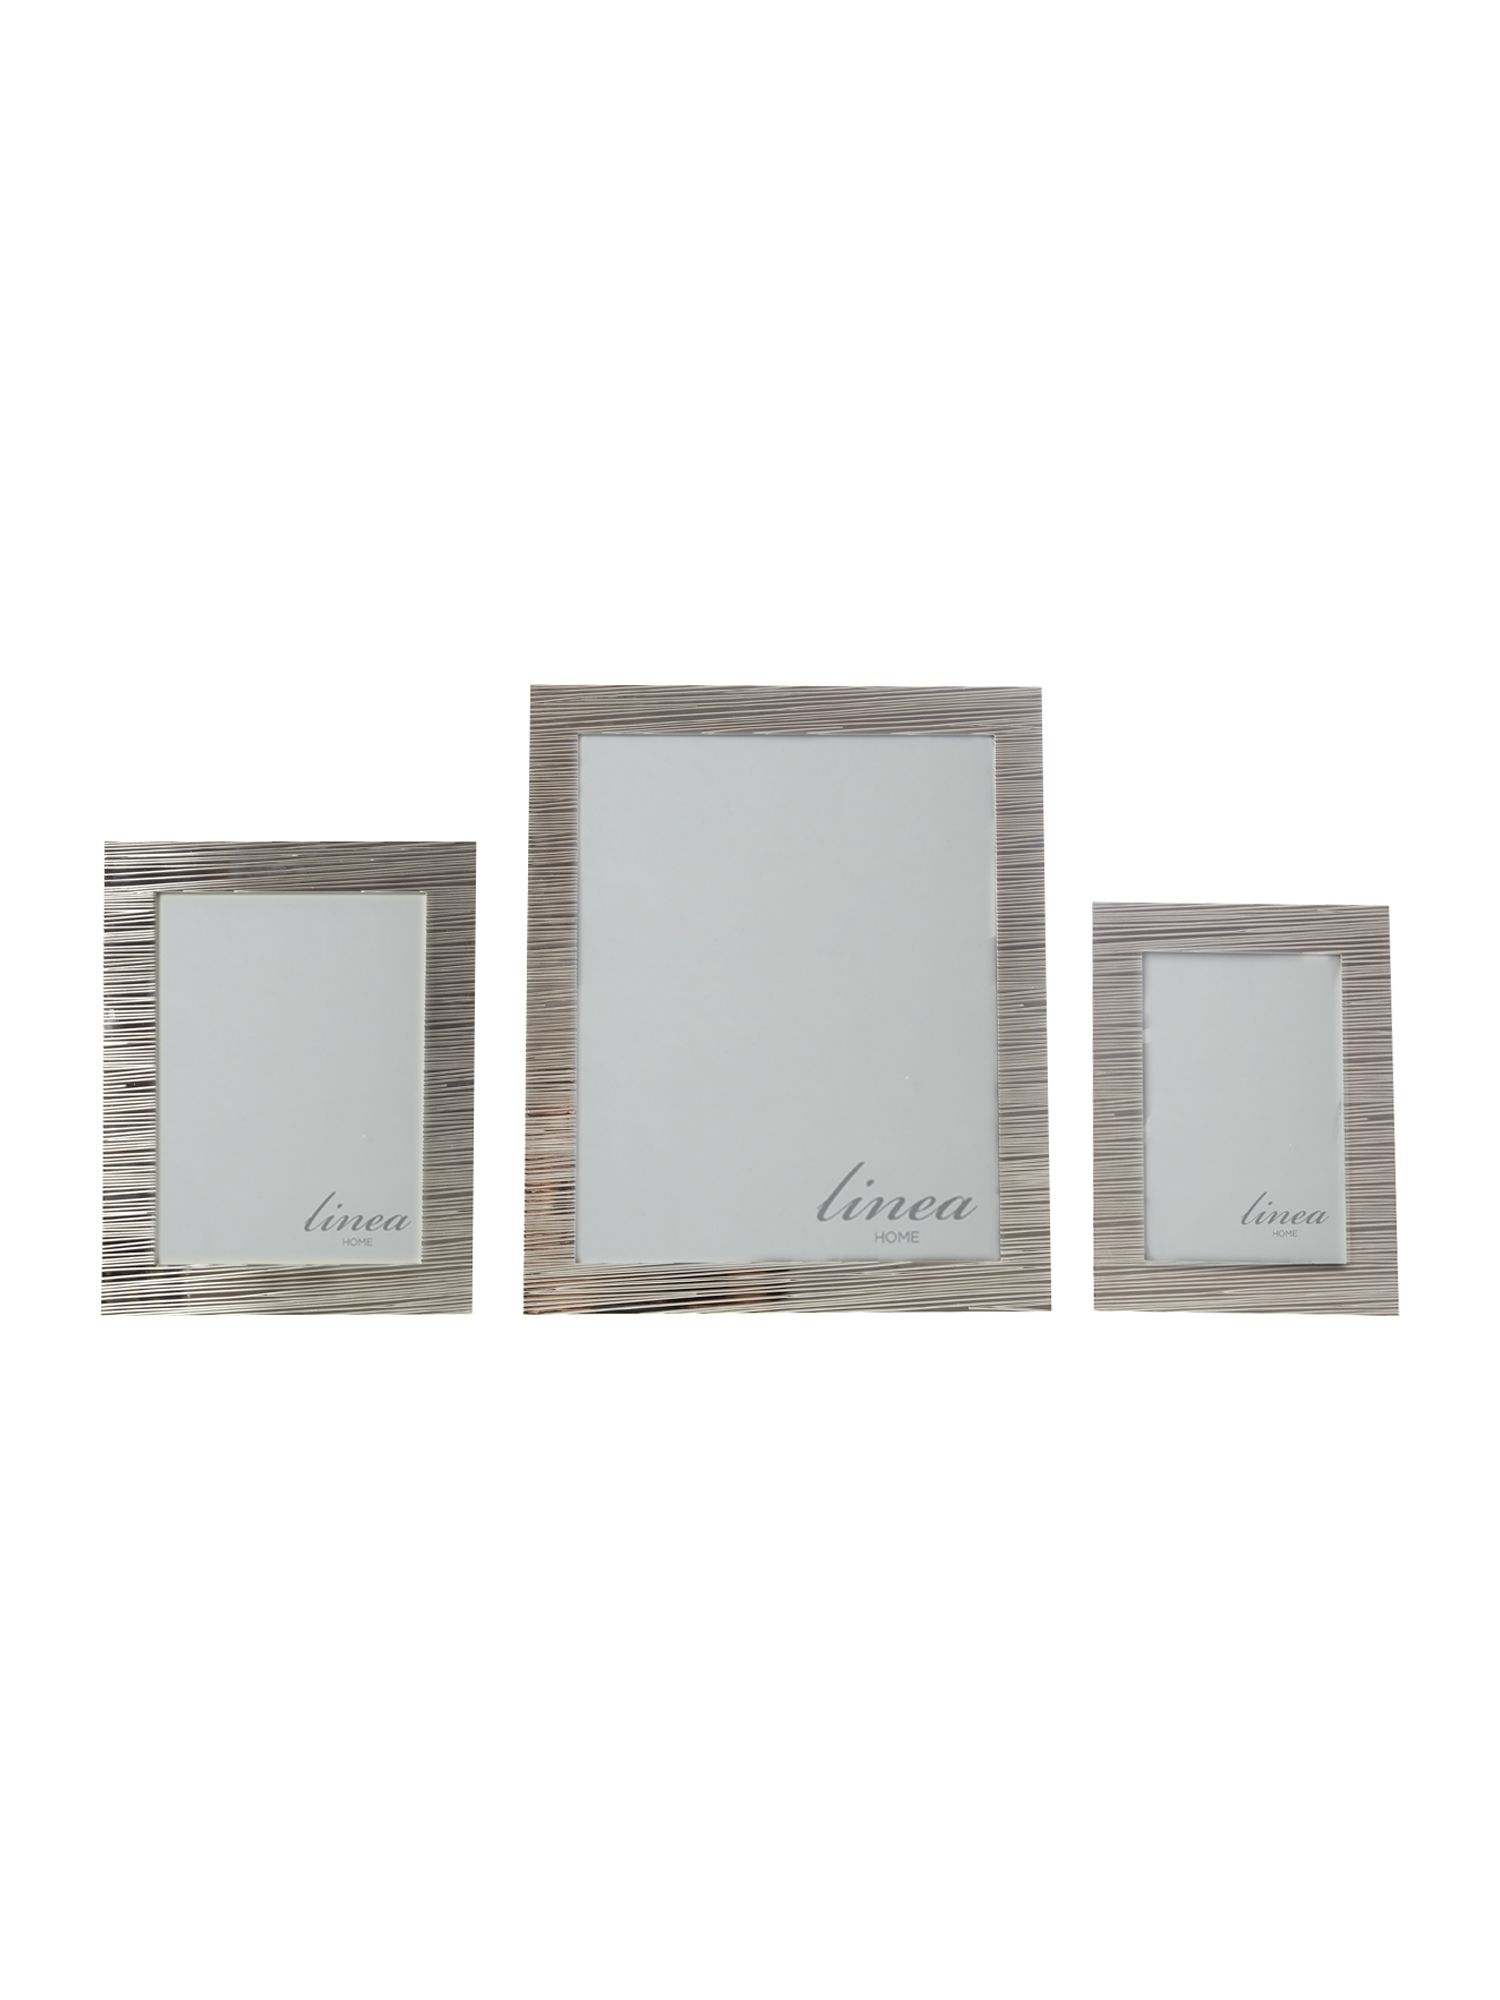 Silver plated textured photo frame